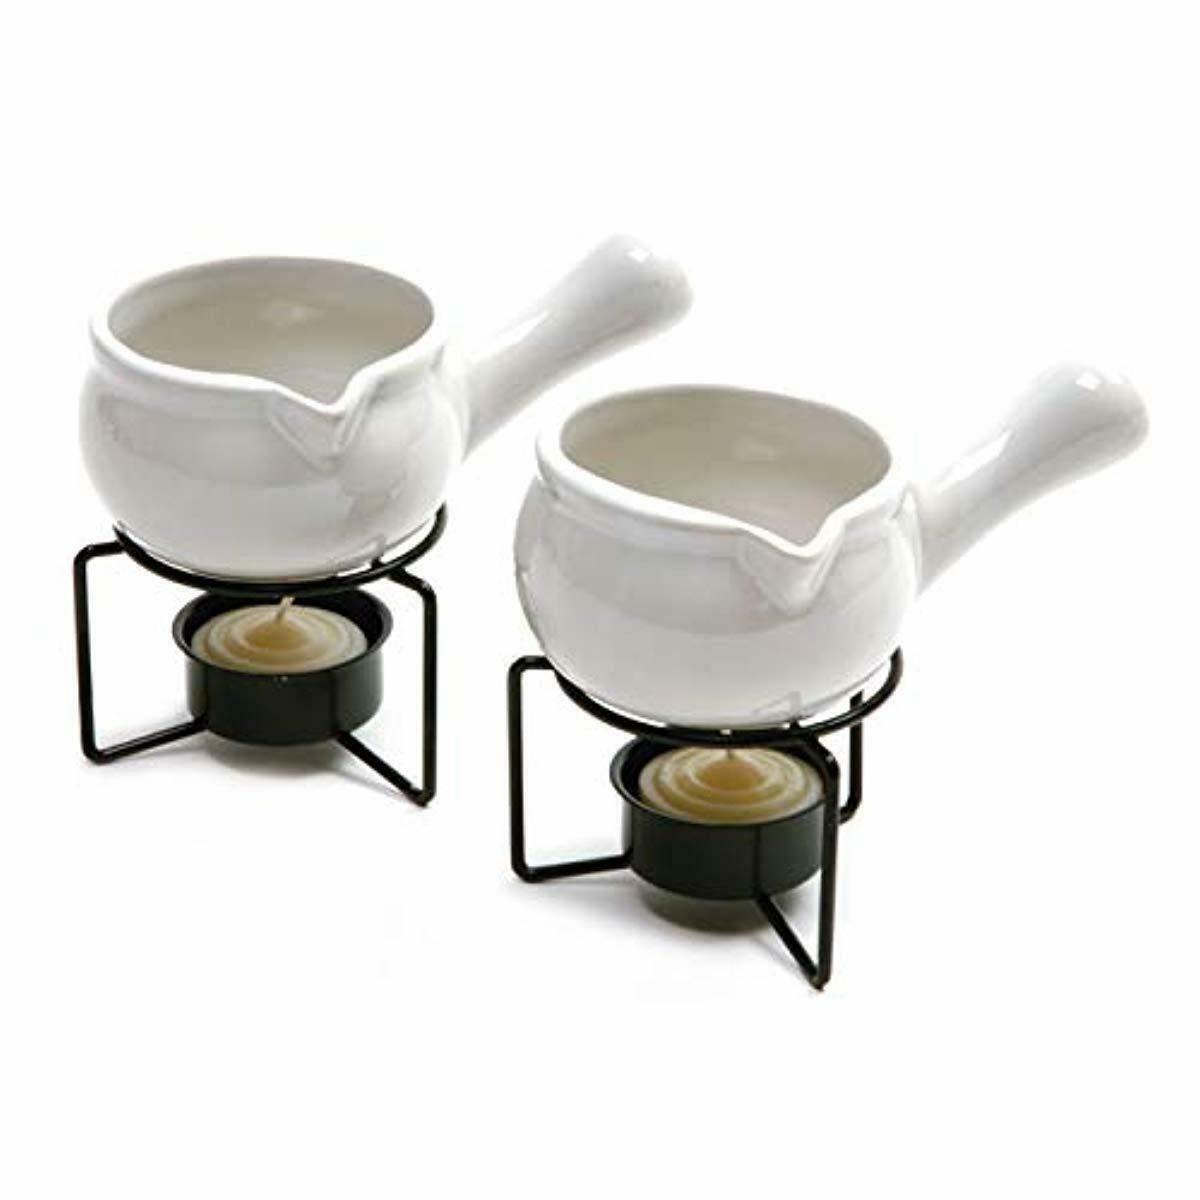 2 Ceramic Butter Warmers for Sauces Crab Lobster Seafood